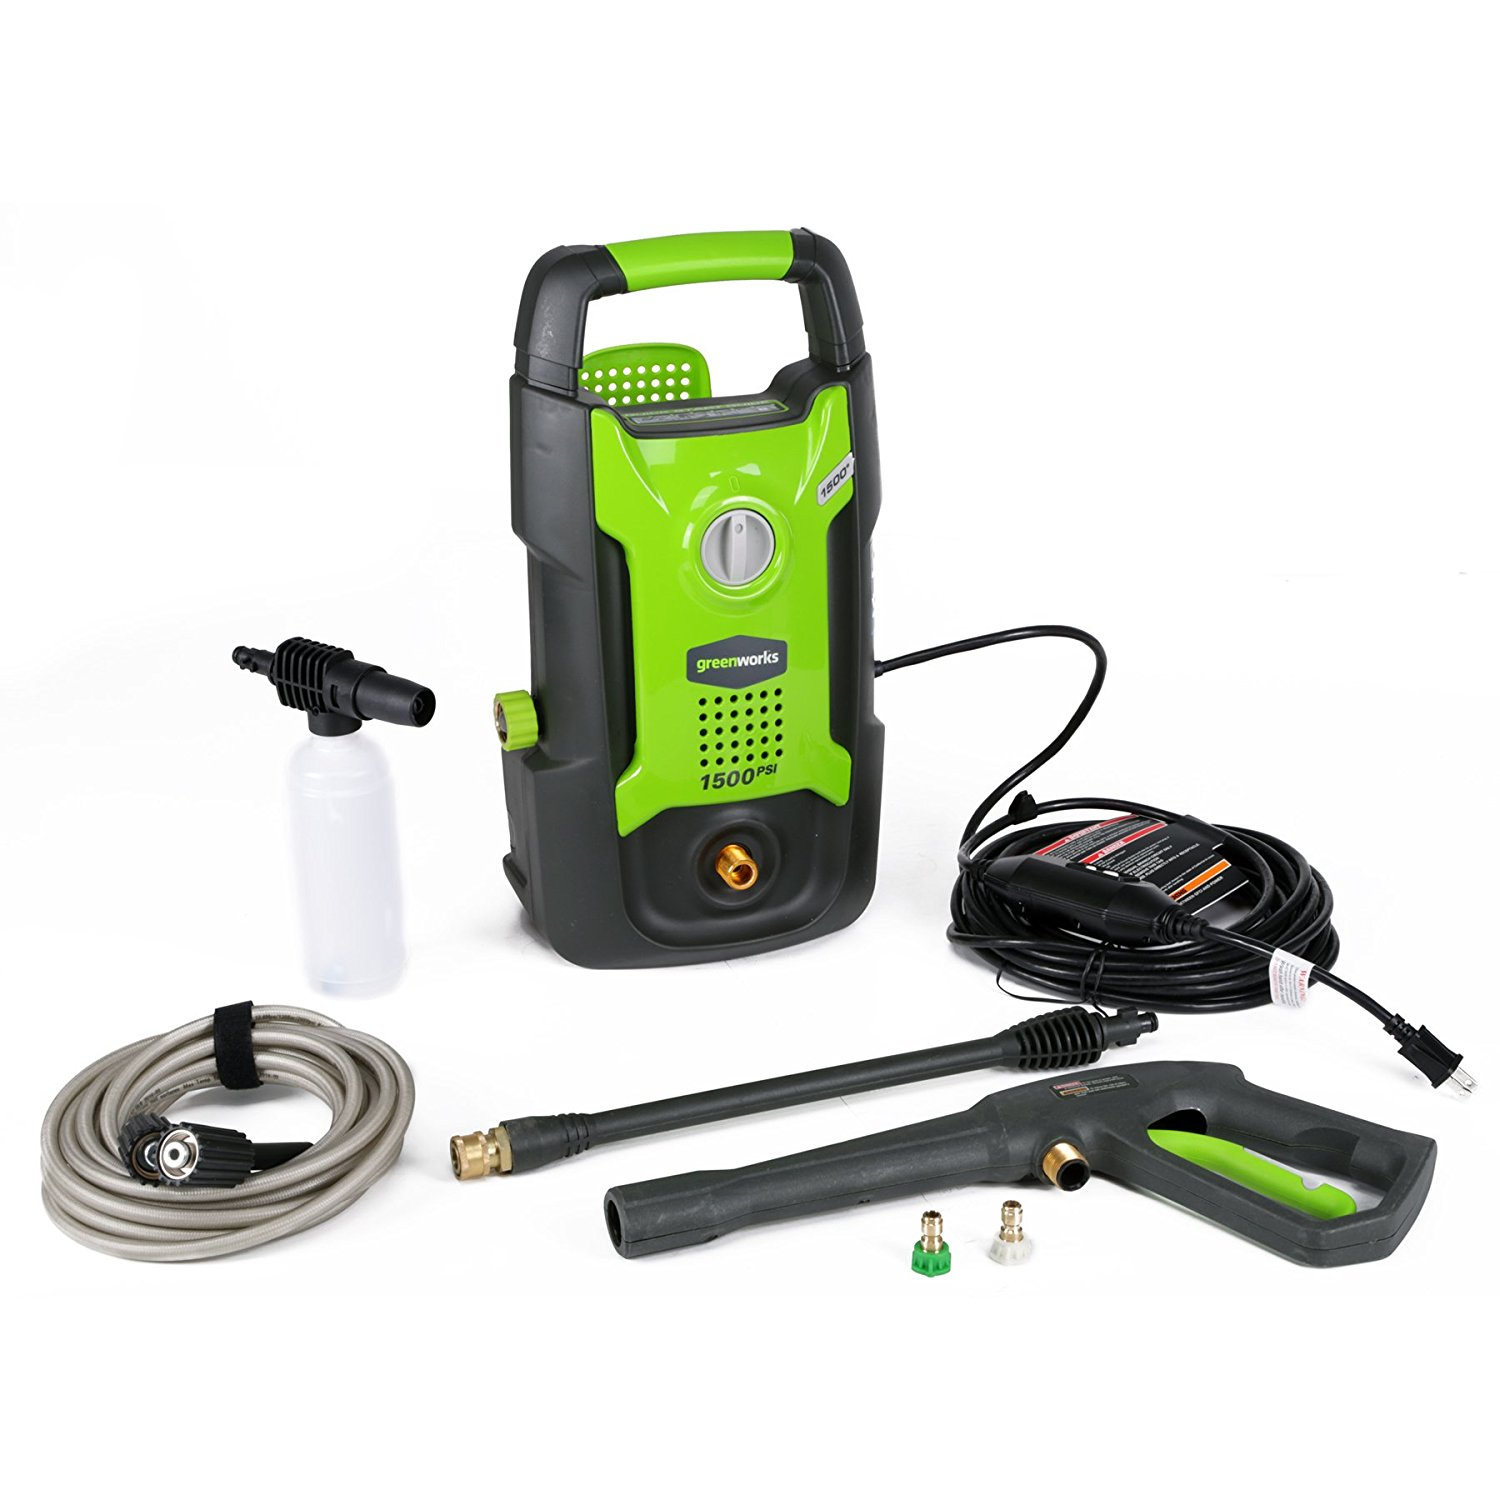 Top 10 Best Hight Pressure Washer For Cleaning Services_2